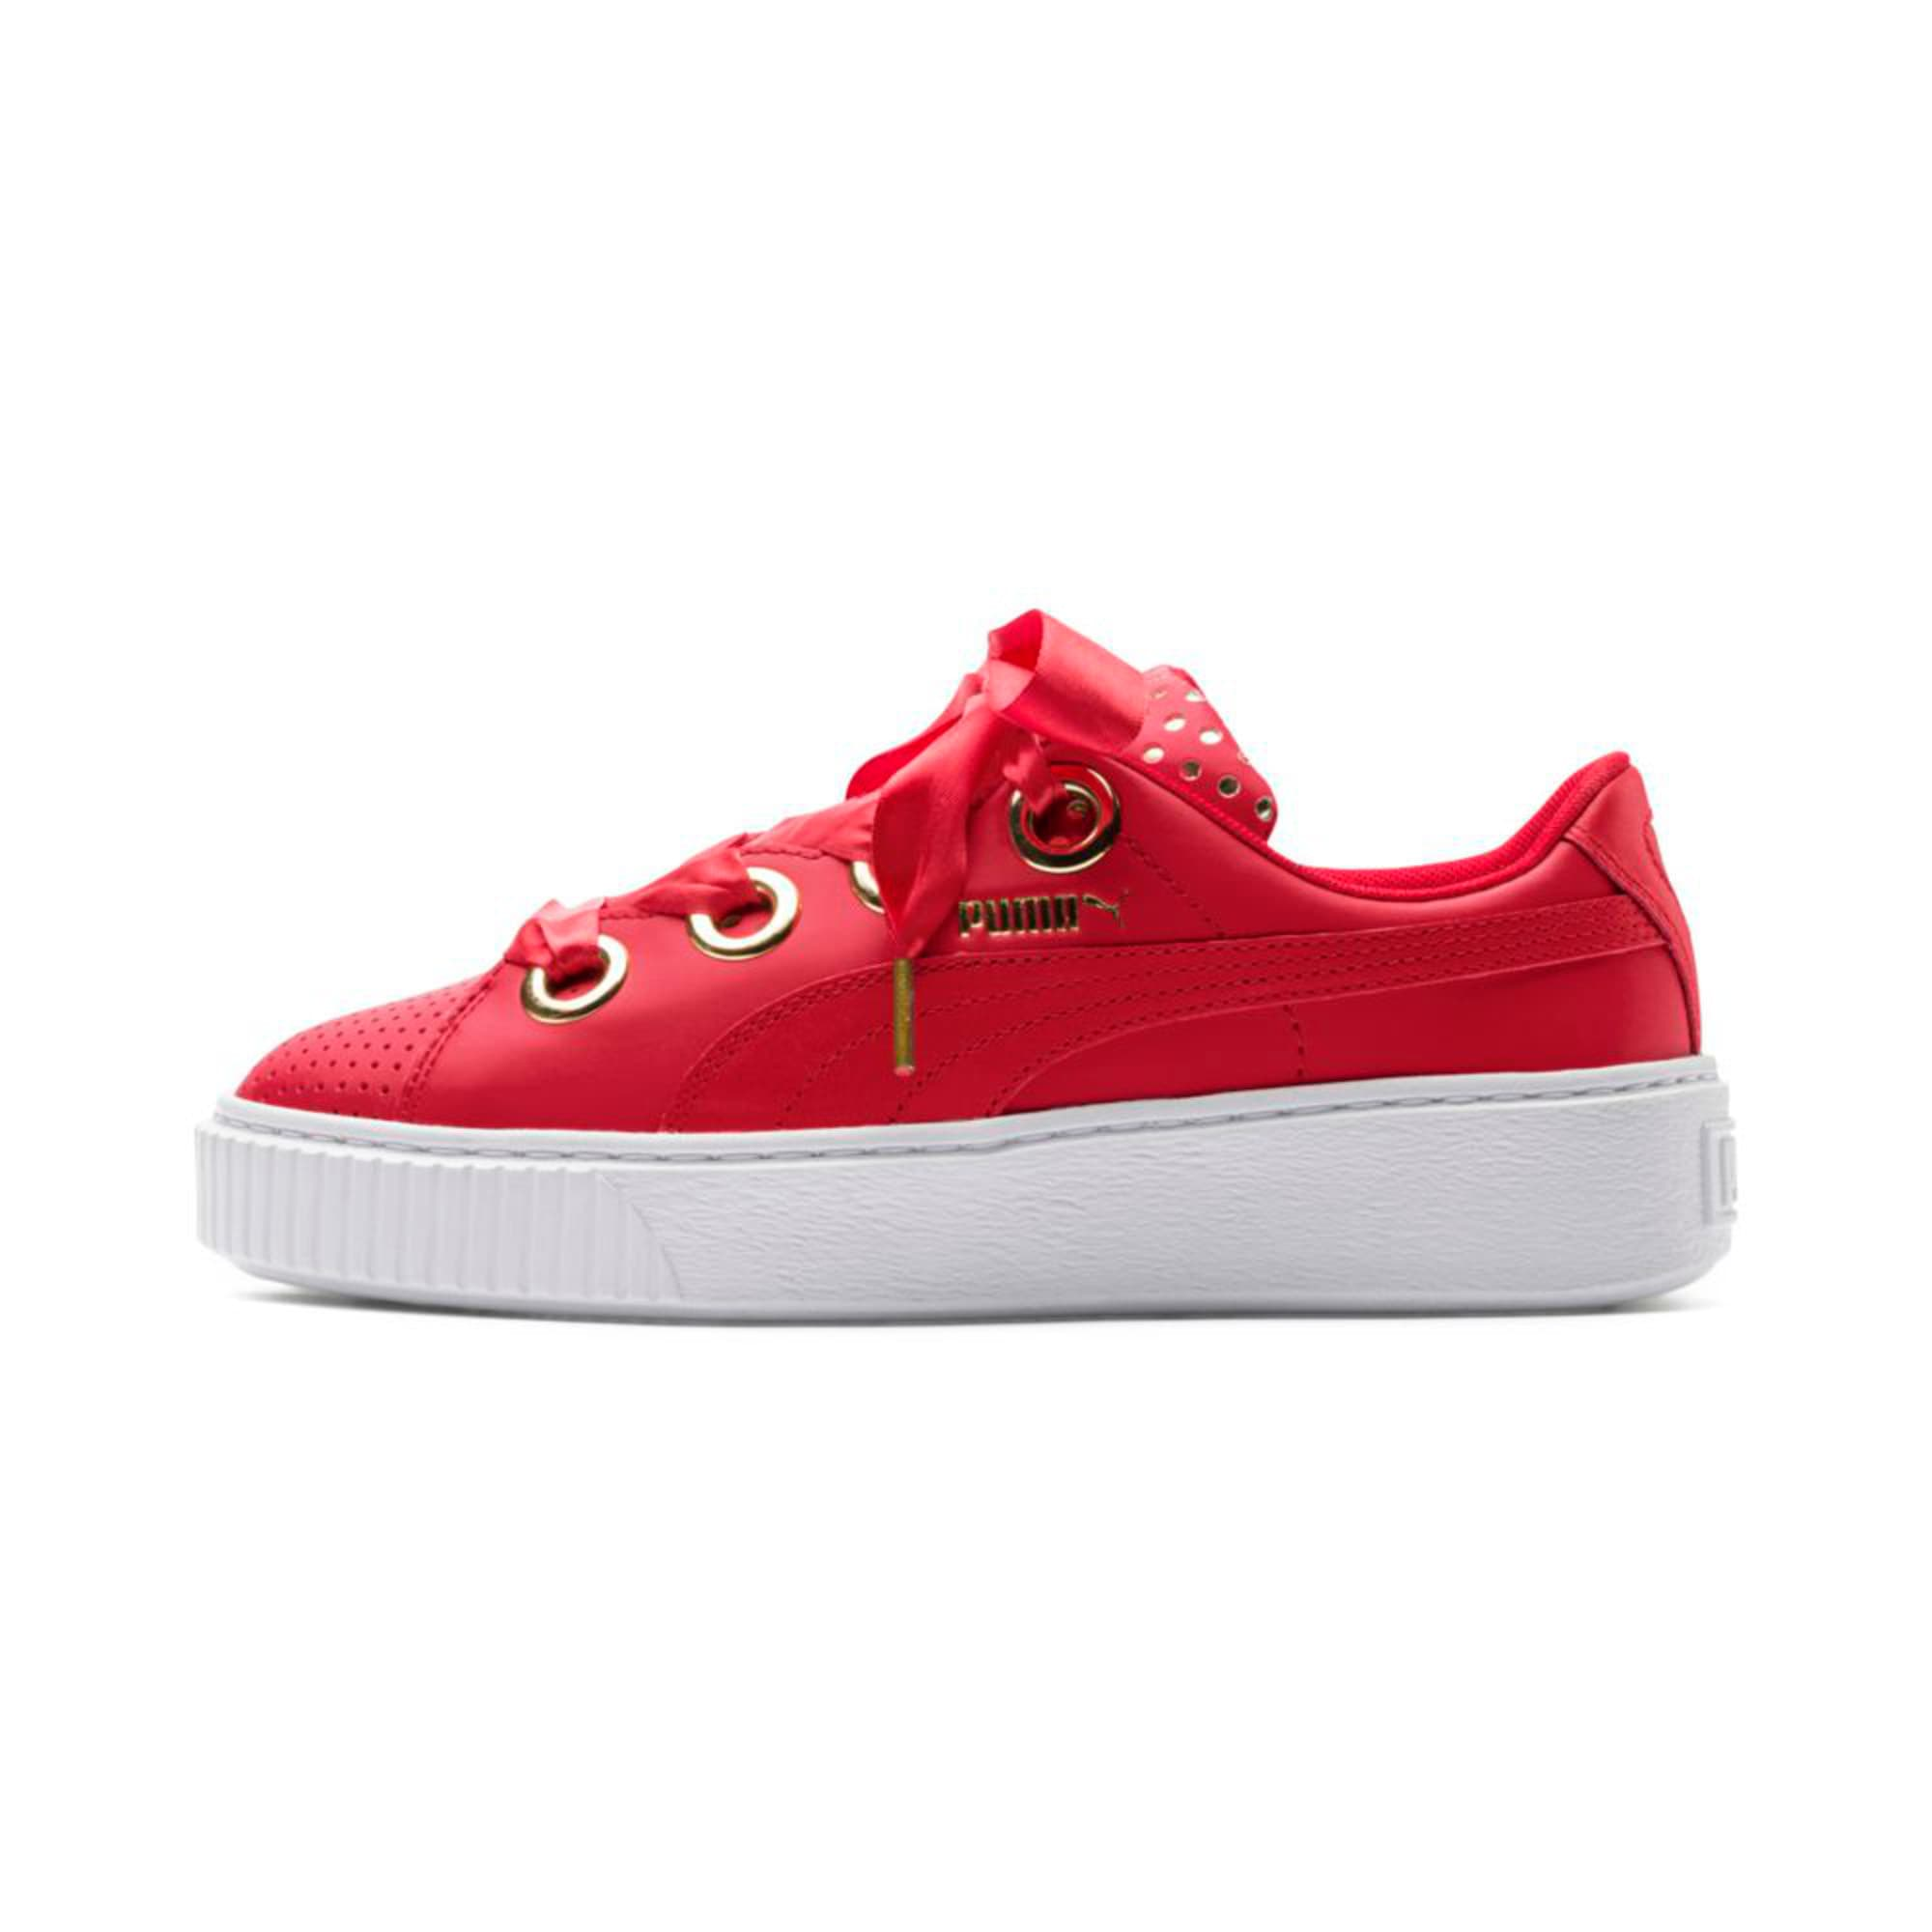 Thumbnail 1 of Platform Kiss Ath Lux Women's Trainers, Ribbon Red-Ribbon Red, medium-IND